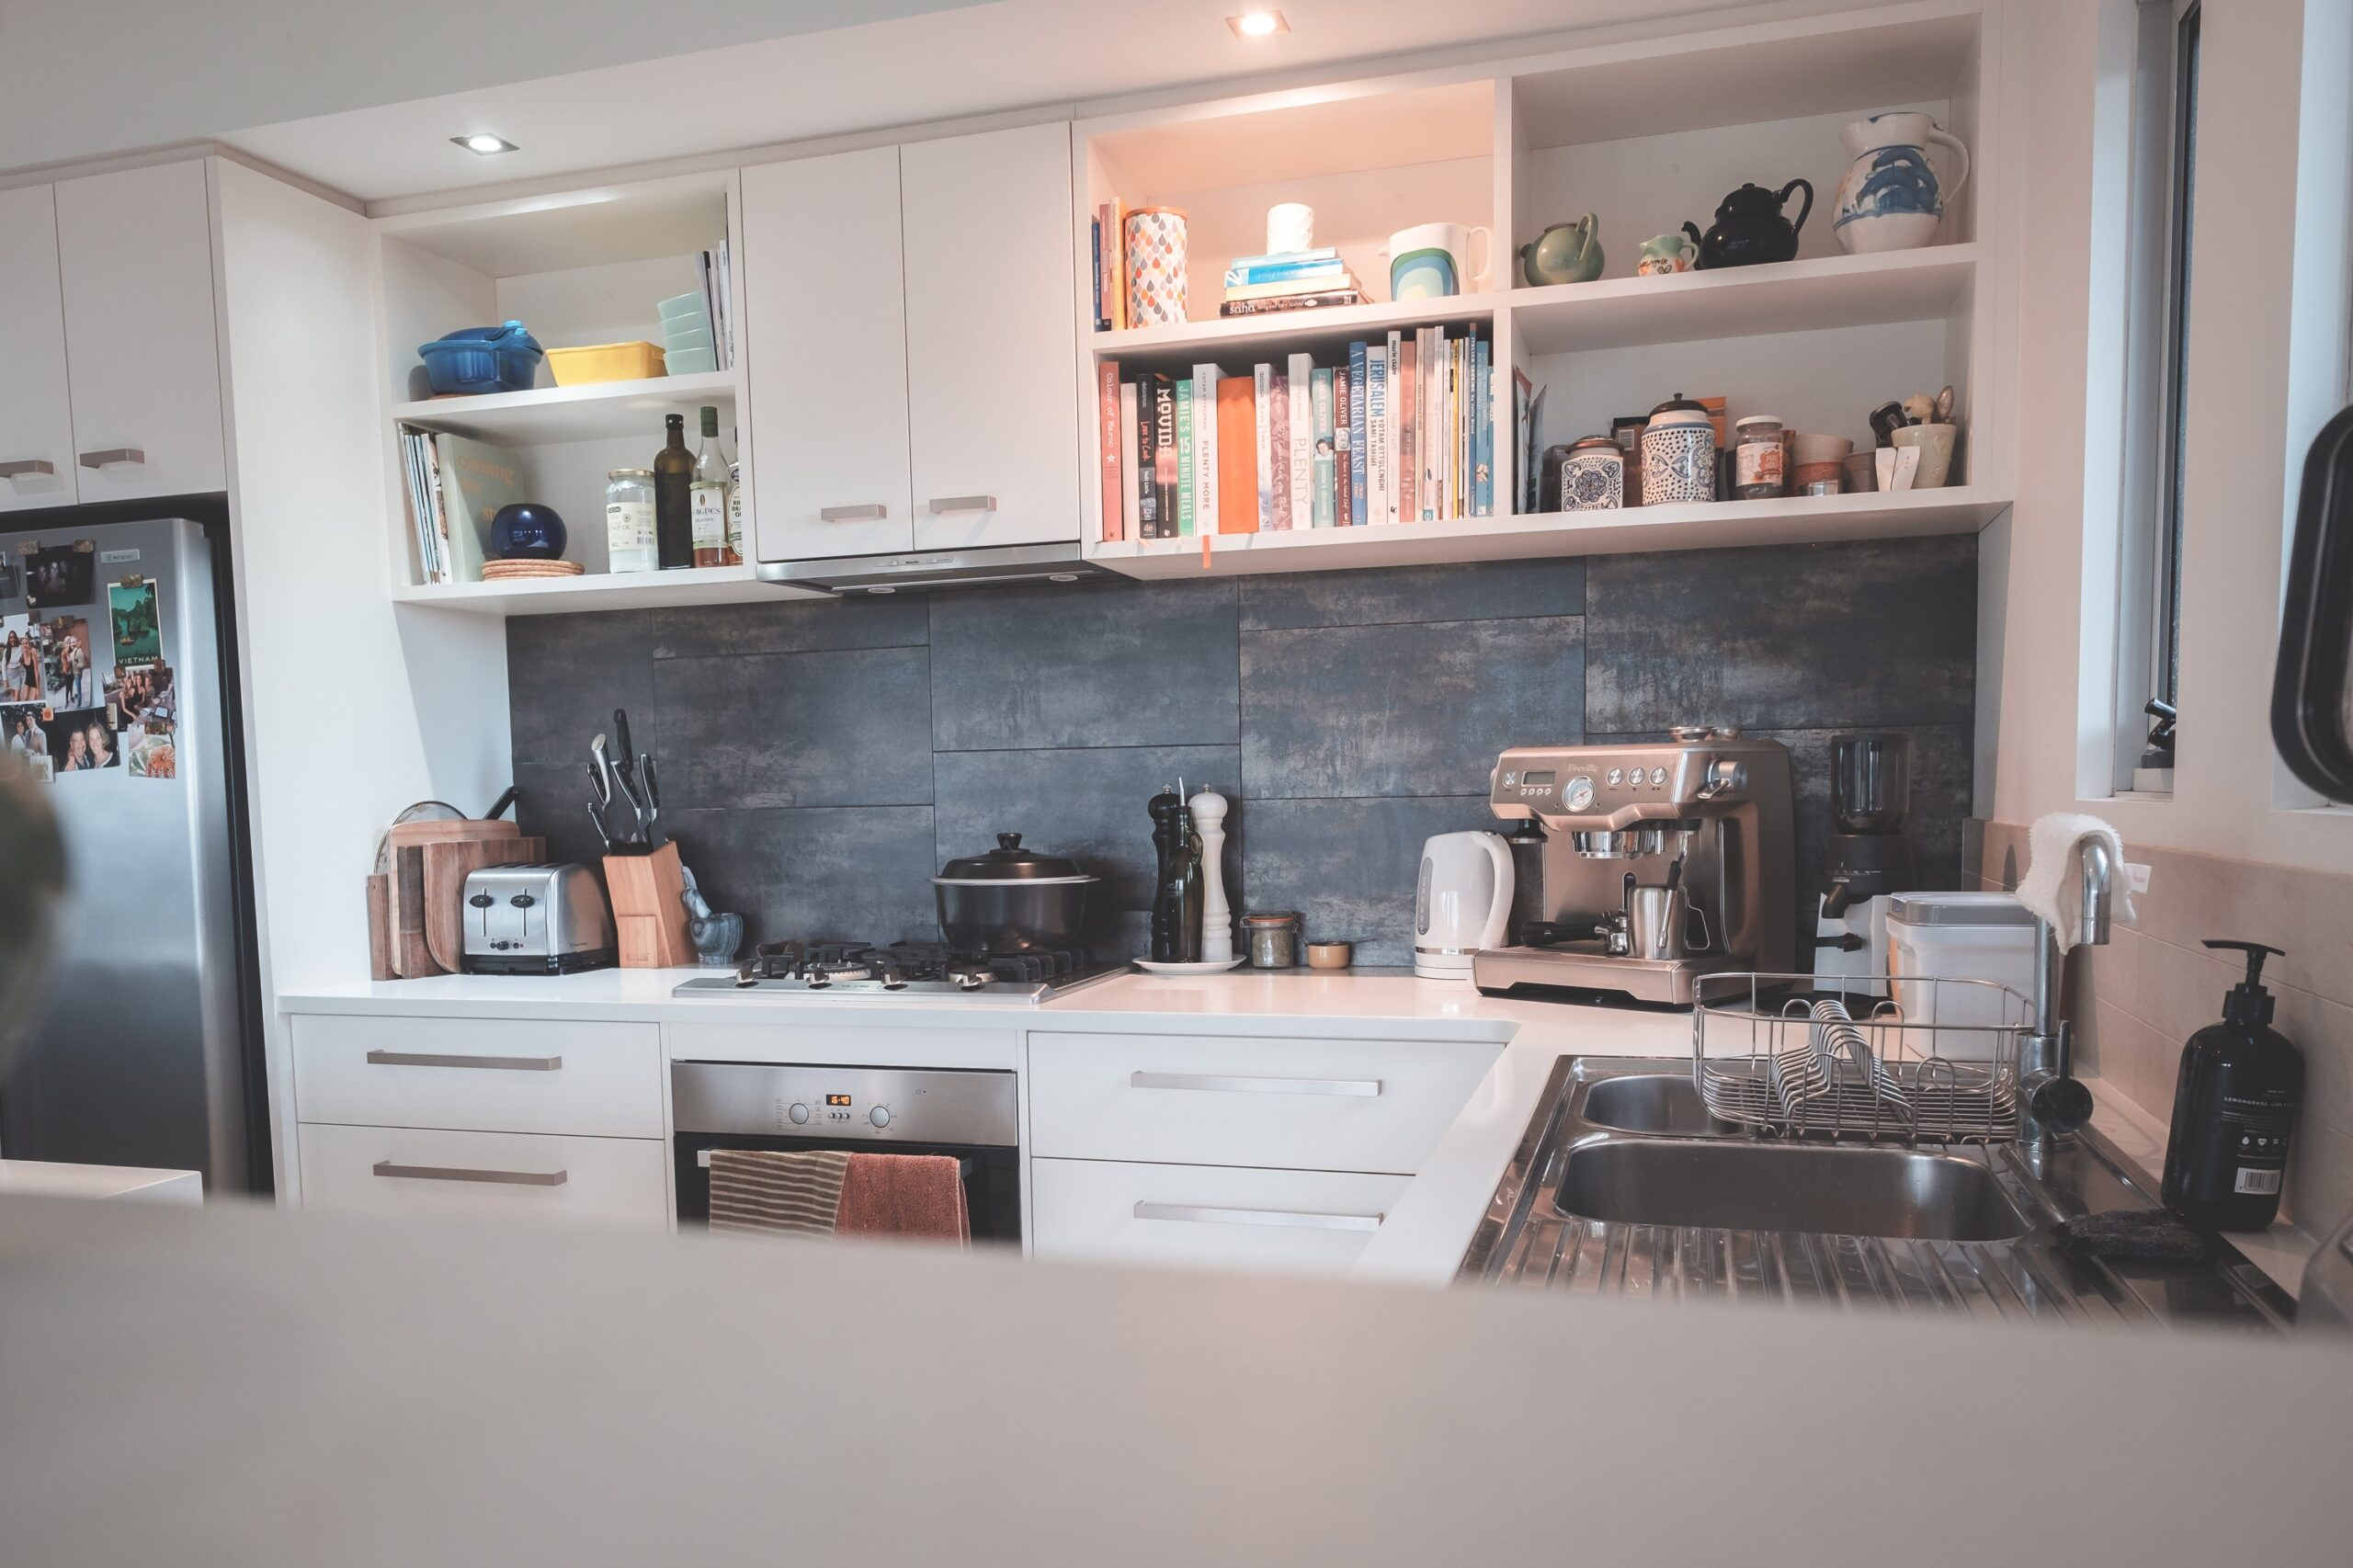 image - How to Clean Kitchen Cabinets | 9 Simple DIY Methods?